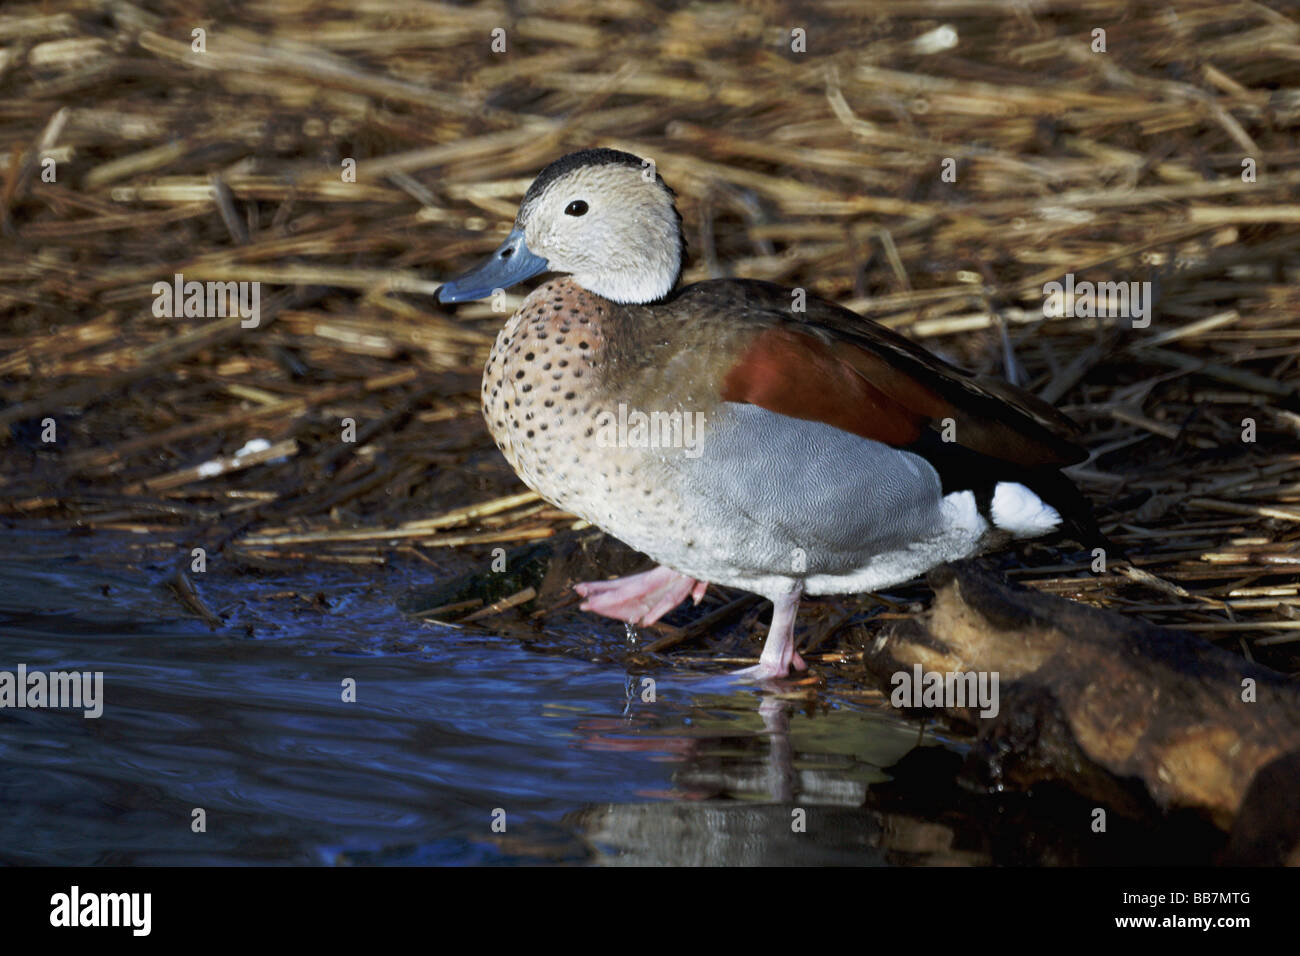 Wildfowl;Ducks;Ringed Teal ;'Calonetta leucophrys';Male standing on the edge of a pond. - Stock Image